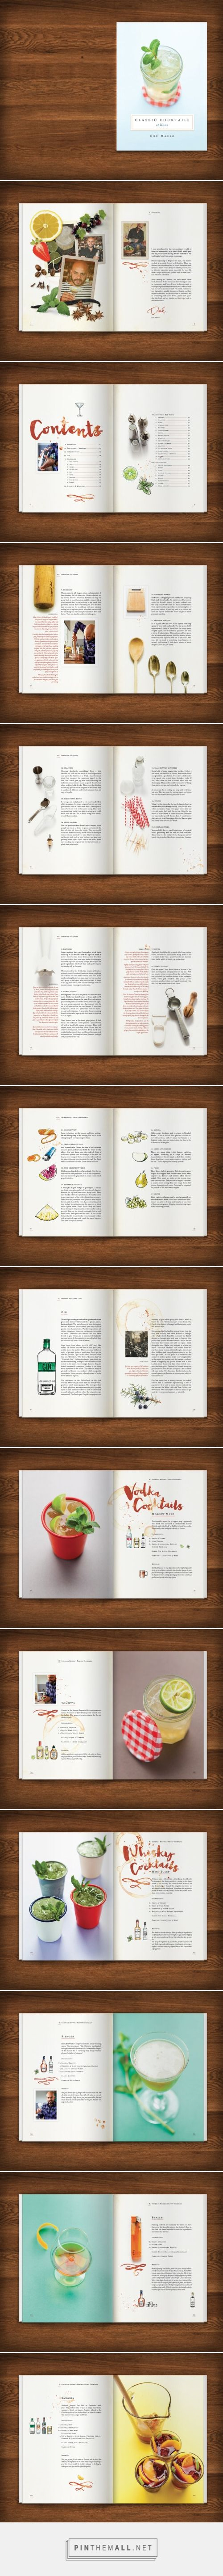 Designed by www.artistictype.co.uk - Cocktail Recipe Book design for Dre Masso. The brief was to design a recipe book for the home bartender that looked fun, relaxed and well used. All of the ingredi (Ingredients Art)